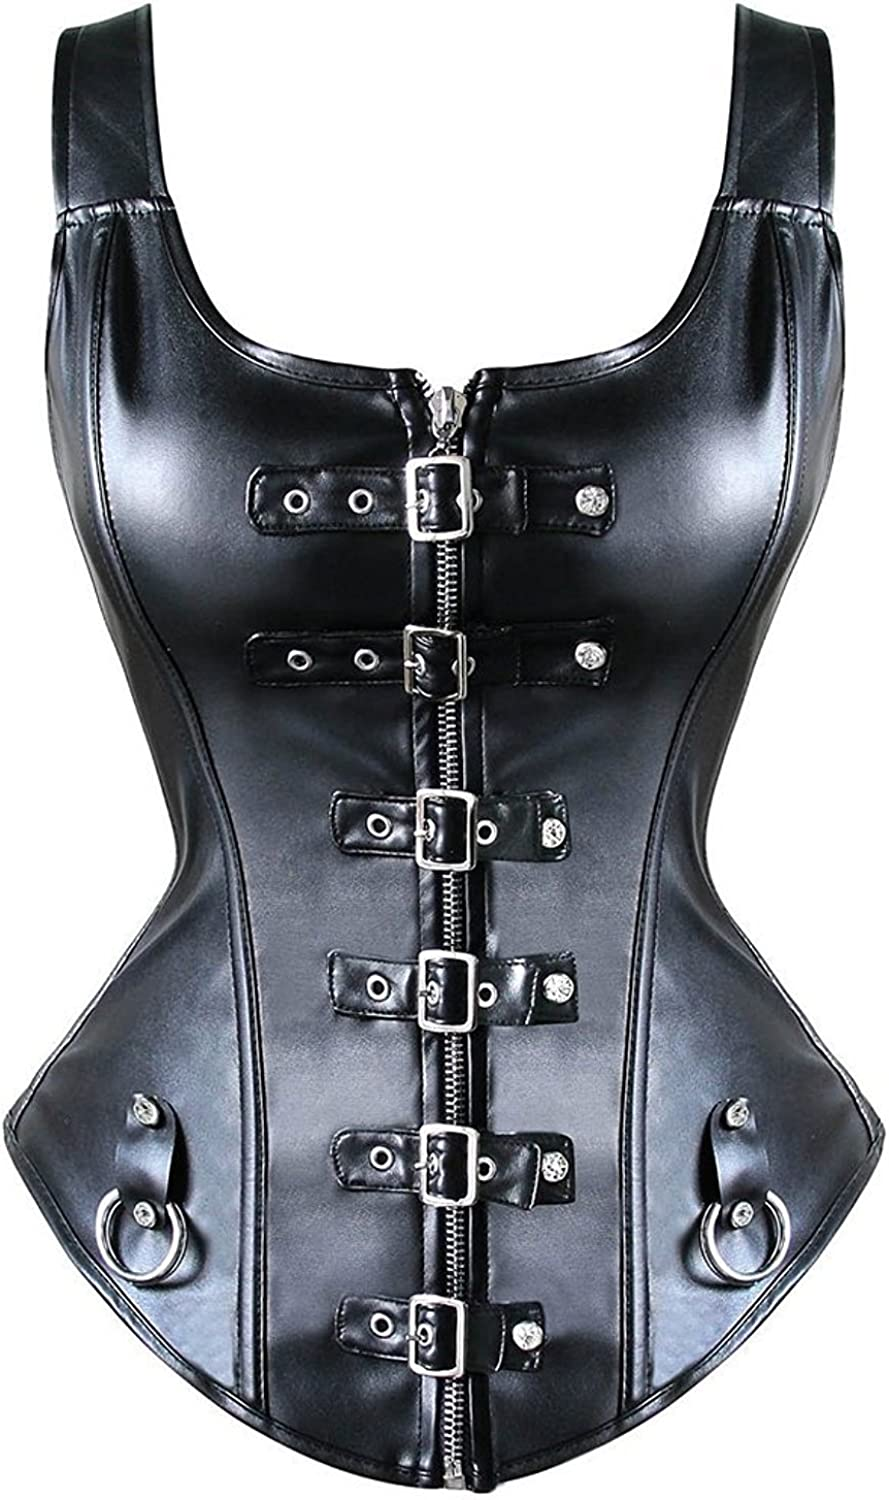 KIWI RATA Women's Punk Rock Faux Leather Buckle-up Corset Bustier Basque with G-String